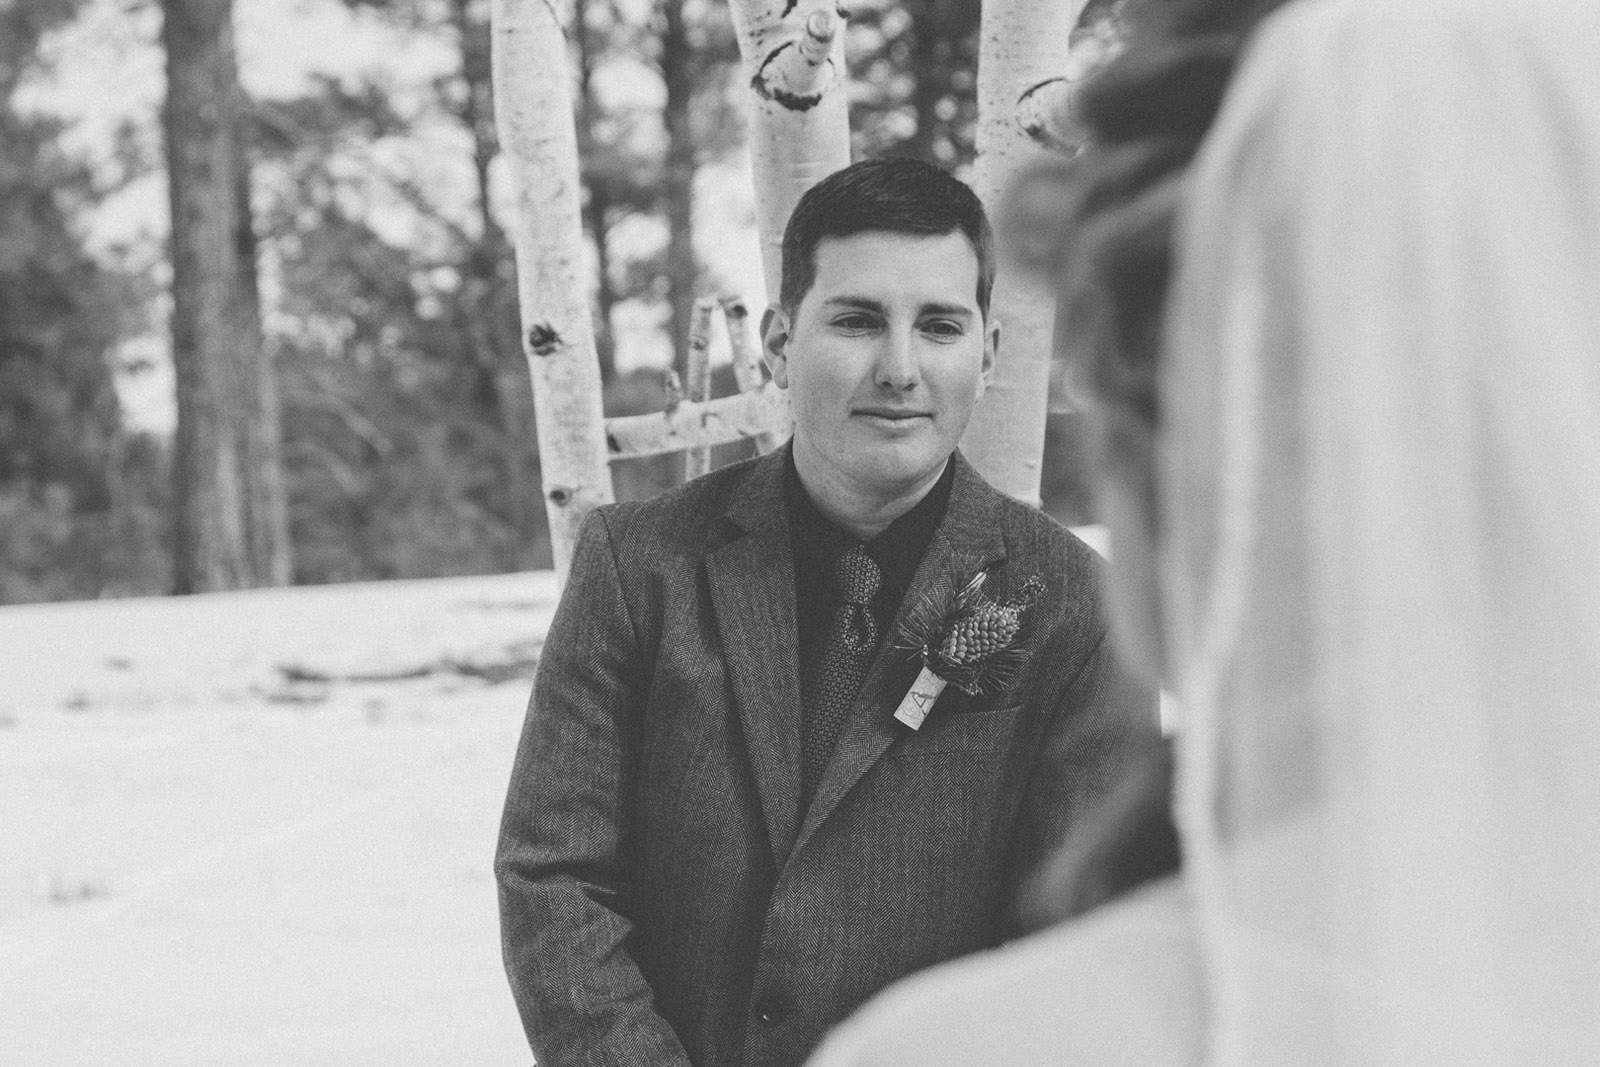 098-wedding-ceremony-in-pagosa-springs-wedding-photographer-snow-winter-wedding